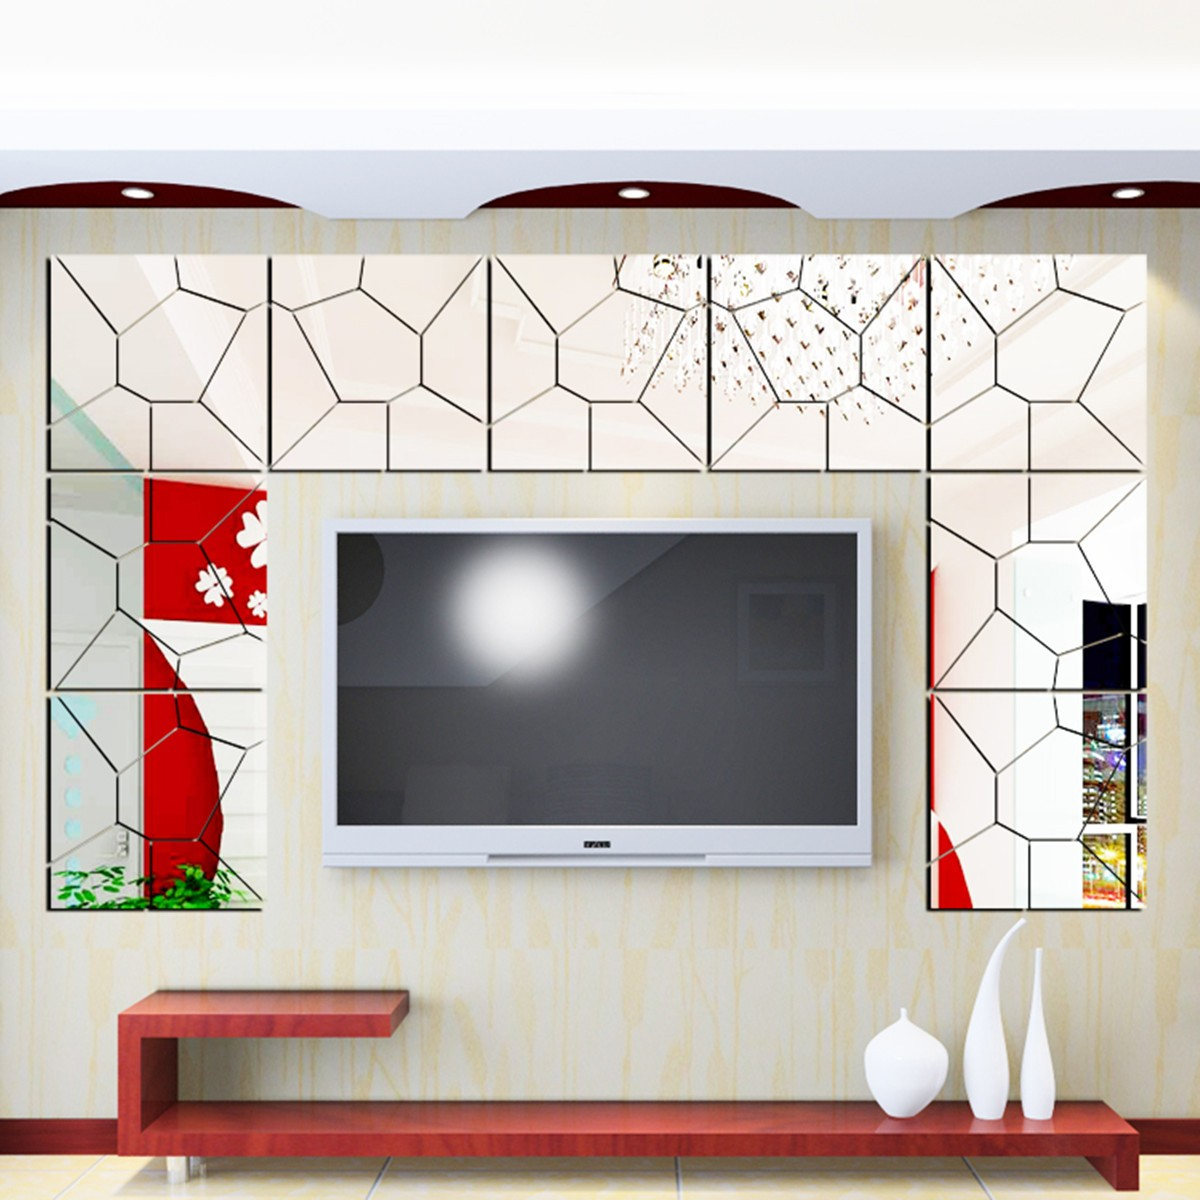 5/10 Sheets Removable Flexible 3D Acrylic Mirror Sheets Mirror Wall Stickers Self Adhesive Plastic Mirror Tiles for Home Decor